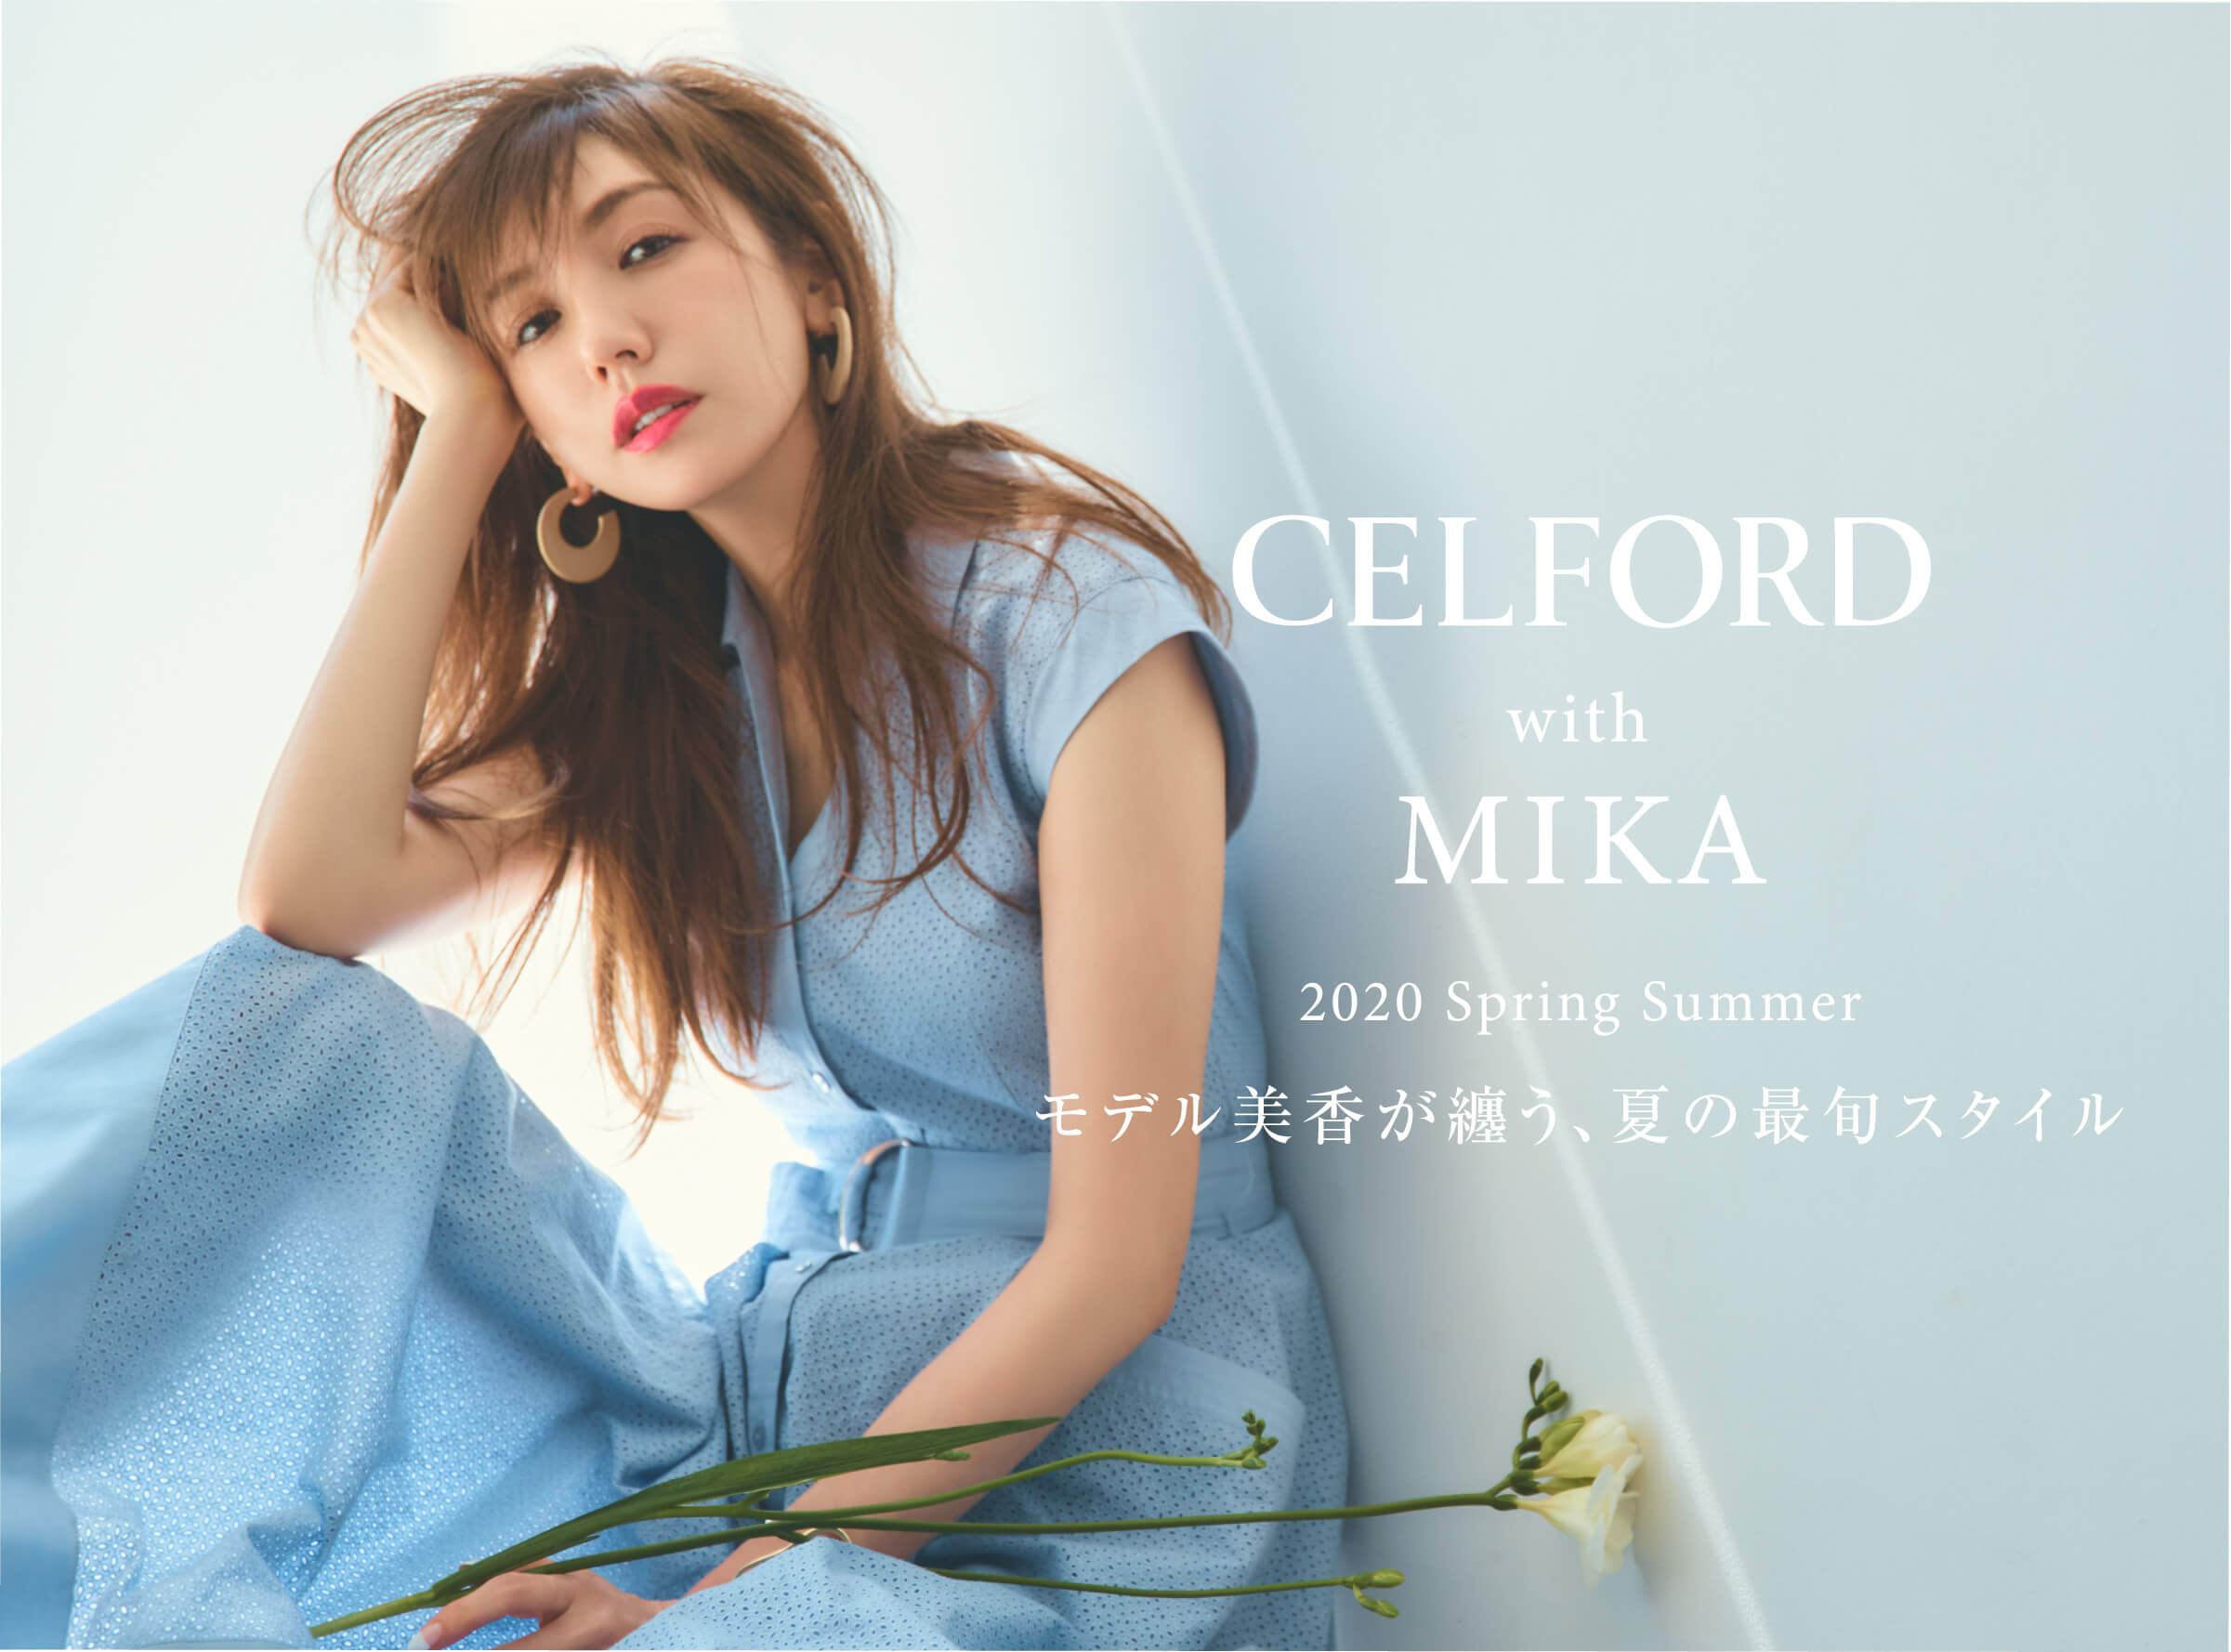 CELFORD with MIKA 2020 Spring Summer モデル美香が纏う、夏の最旬スタイル